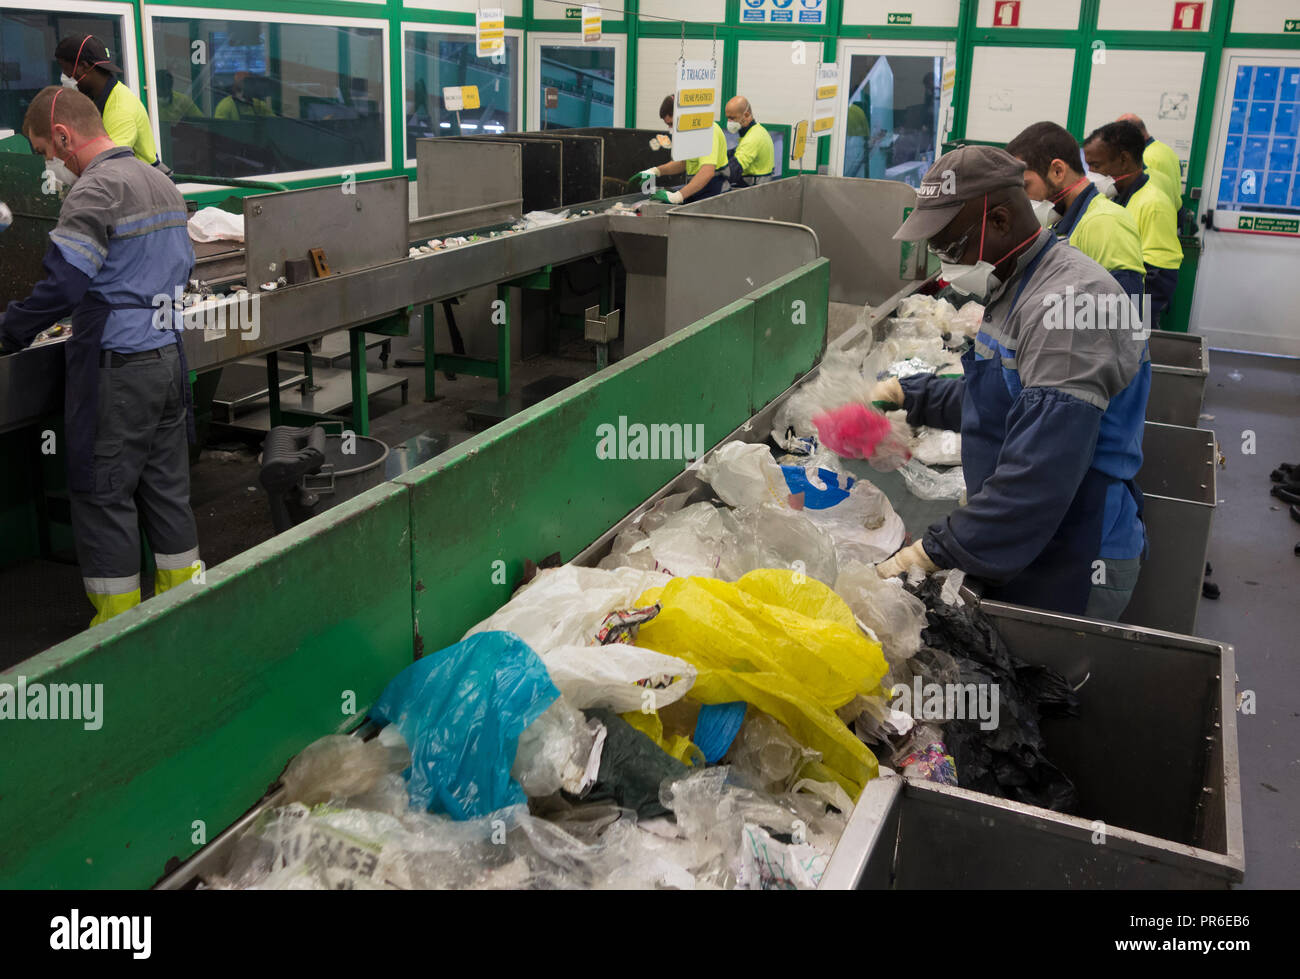 Employees of a waste facility on a conveyor belt sorting line. Manual sorting of plastic to to separate non-recyclable plastic PET objects. Some - Stock Image